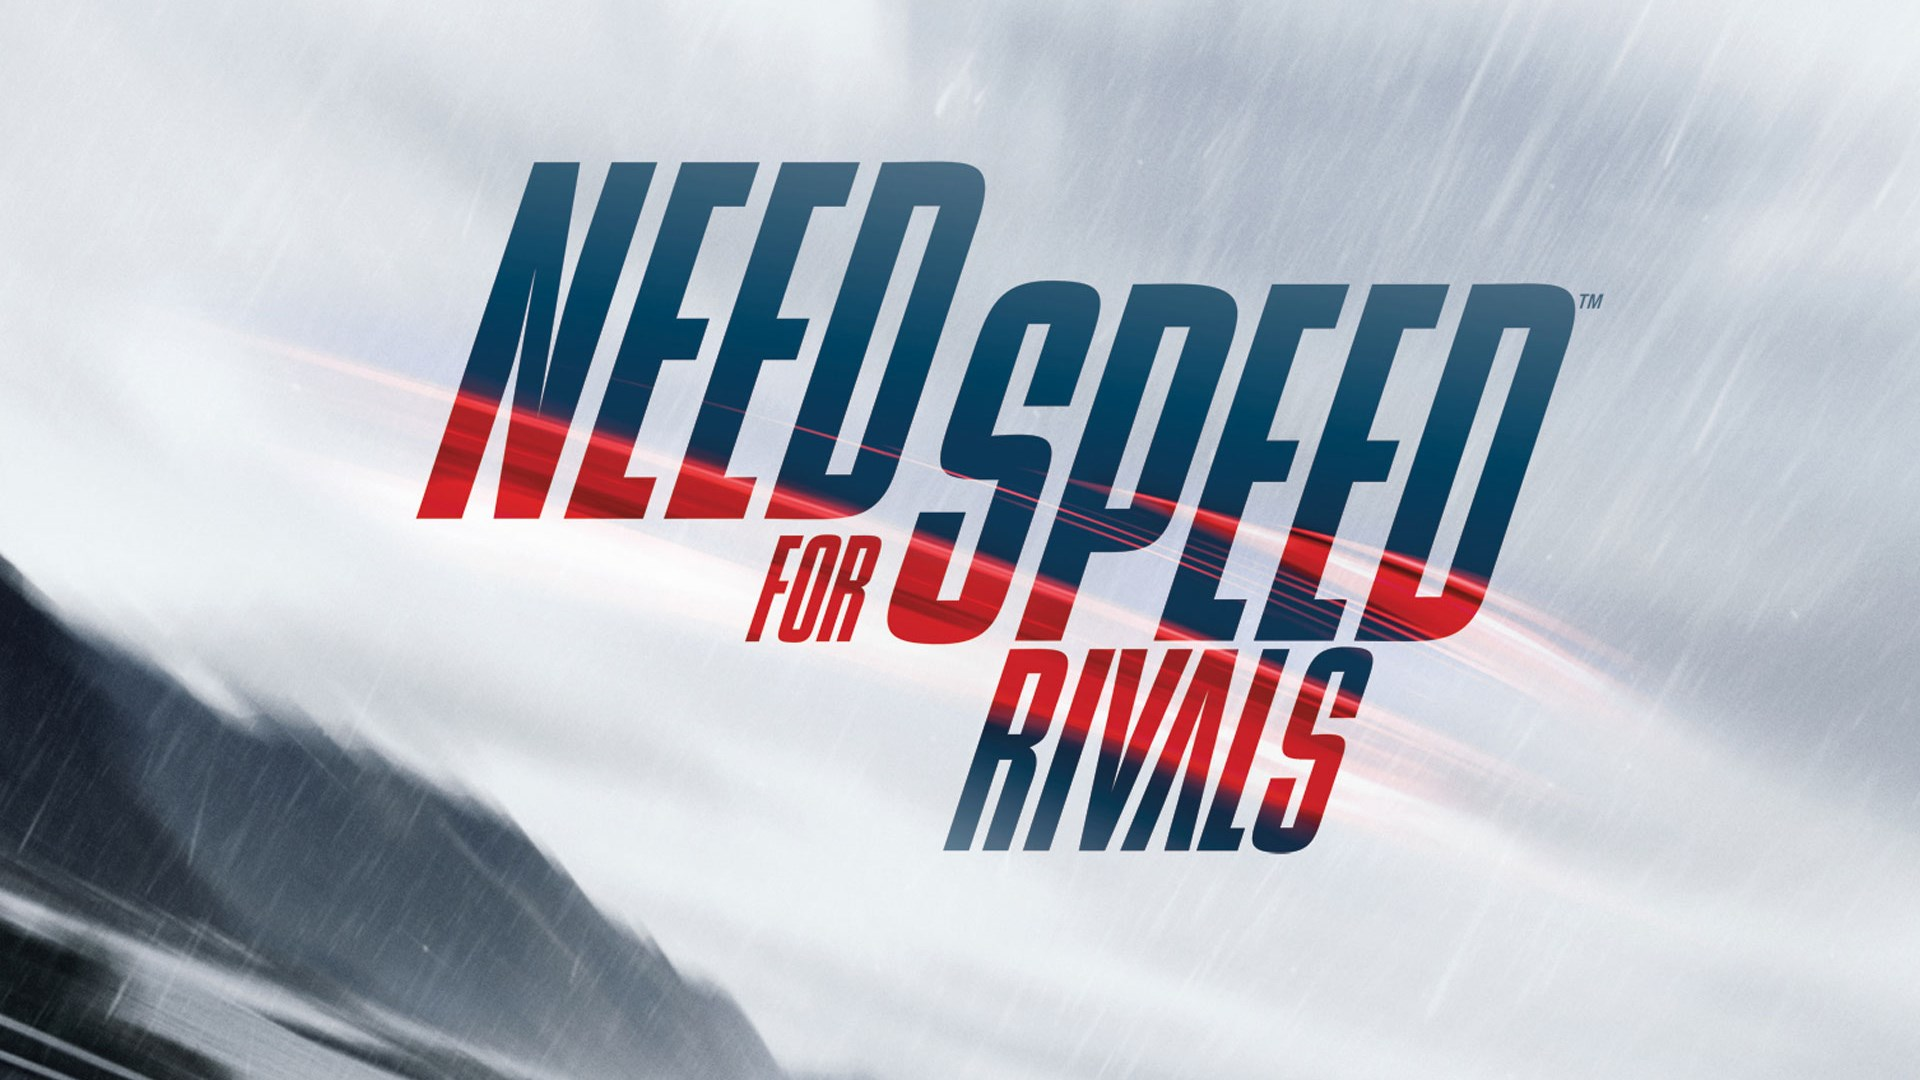 EA Revs Up for the Next Generation of Gaming With Need for Speed Rivals — The Only Racing Game on PlayStation 4